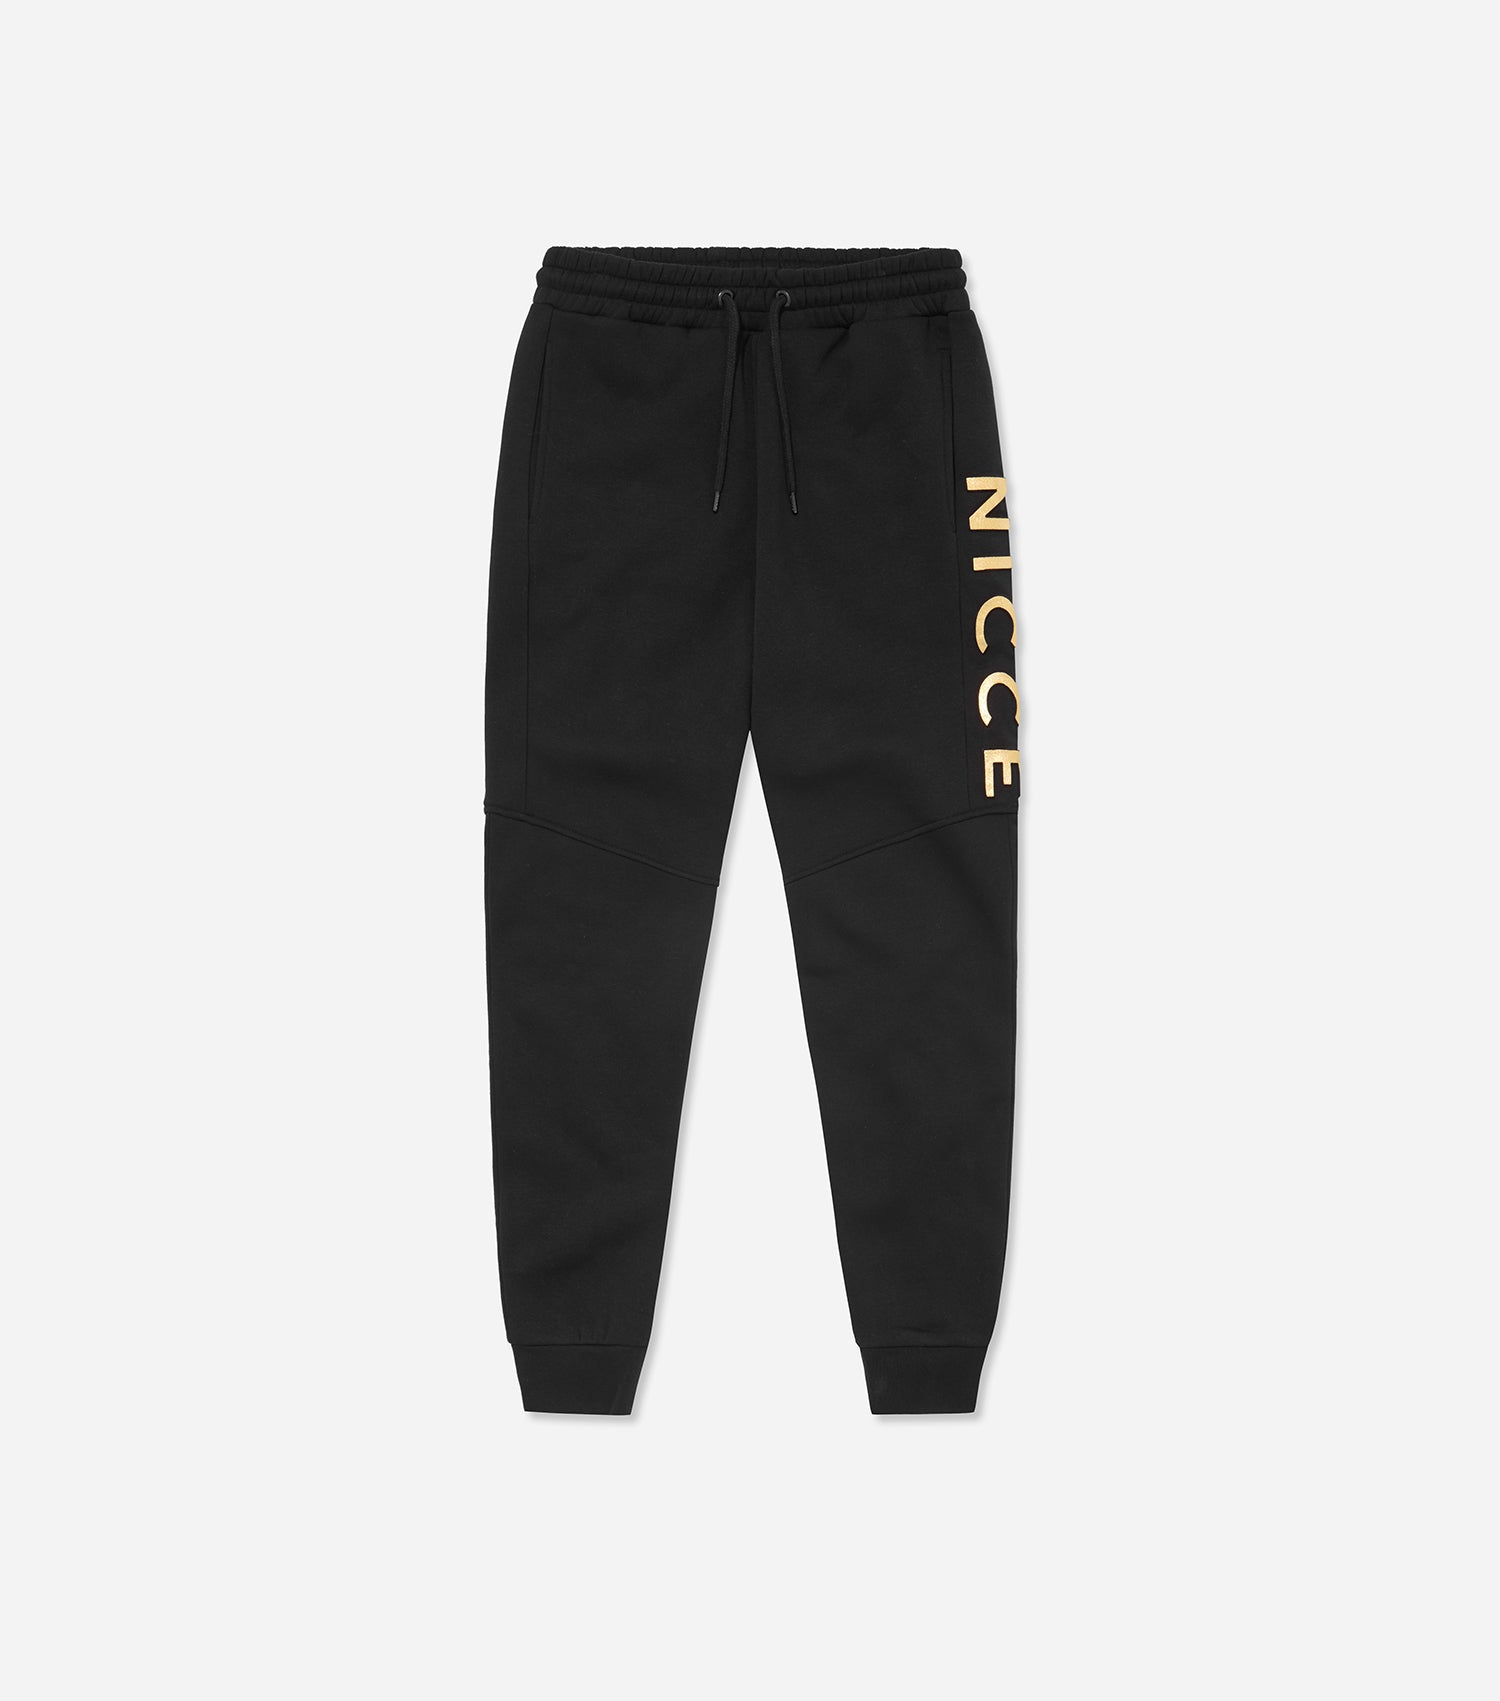 Saint joggers in black. Skinny fit jogger with embossed logo in a gold foil print.  Pair with hood.